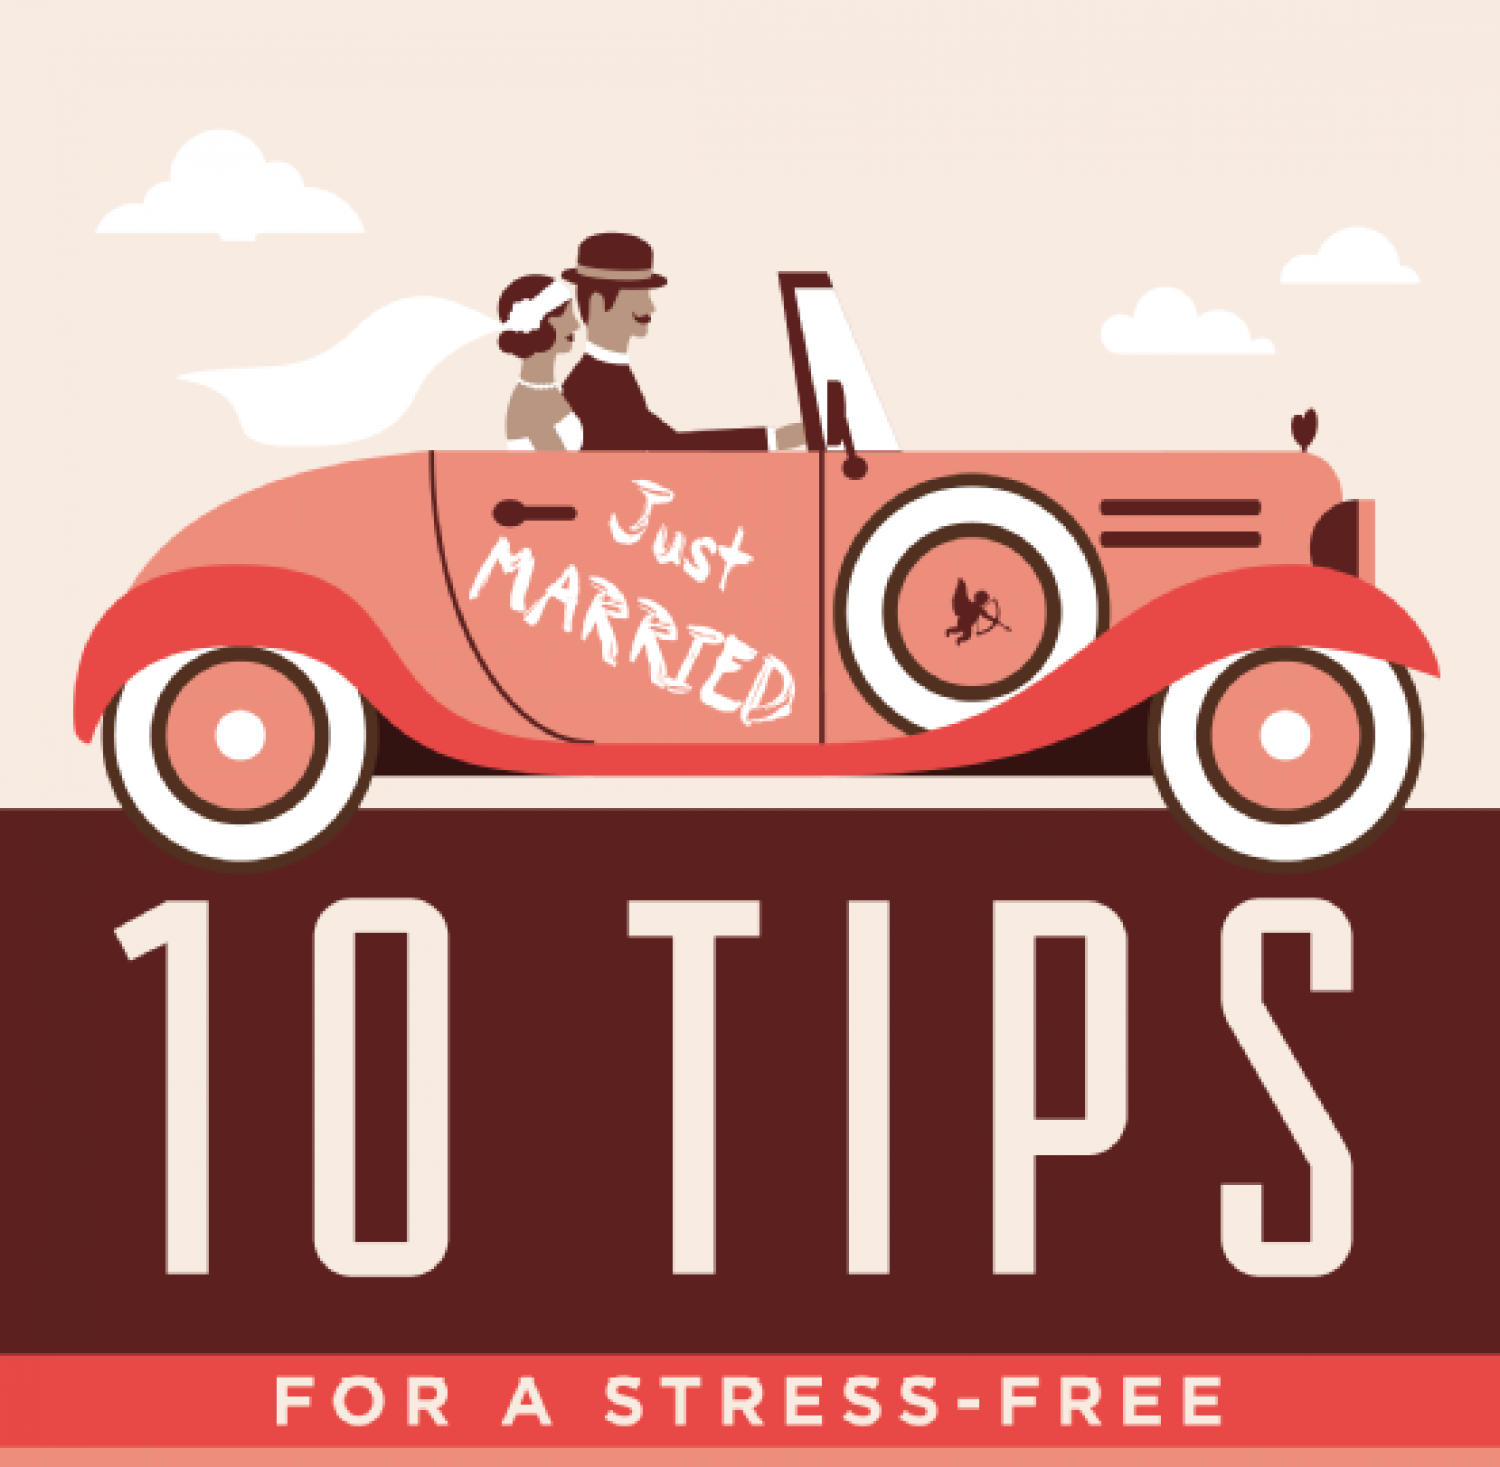 10 Tips for a Stress-Free Wedding Infographic